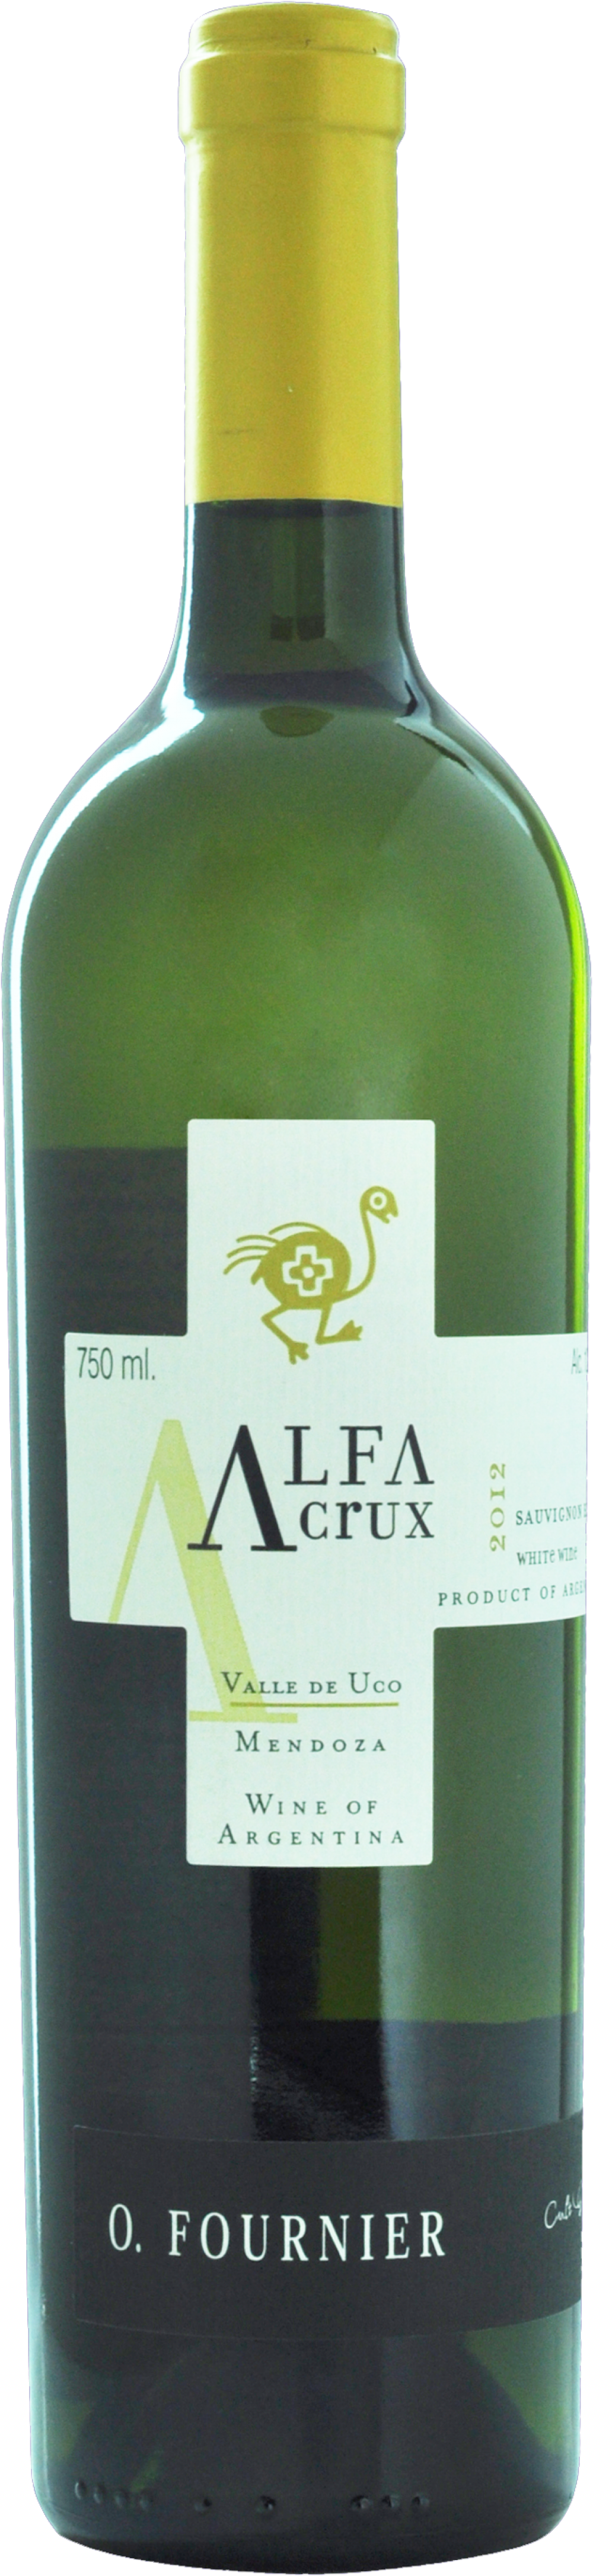 files/images/wines/Argentina/Bodegas O. Fournier/TRFA26712_pic_big.png